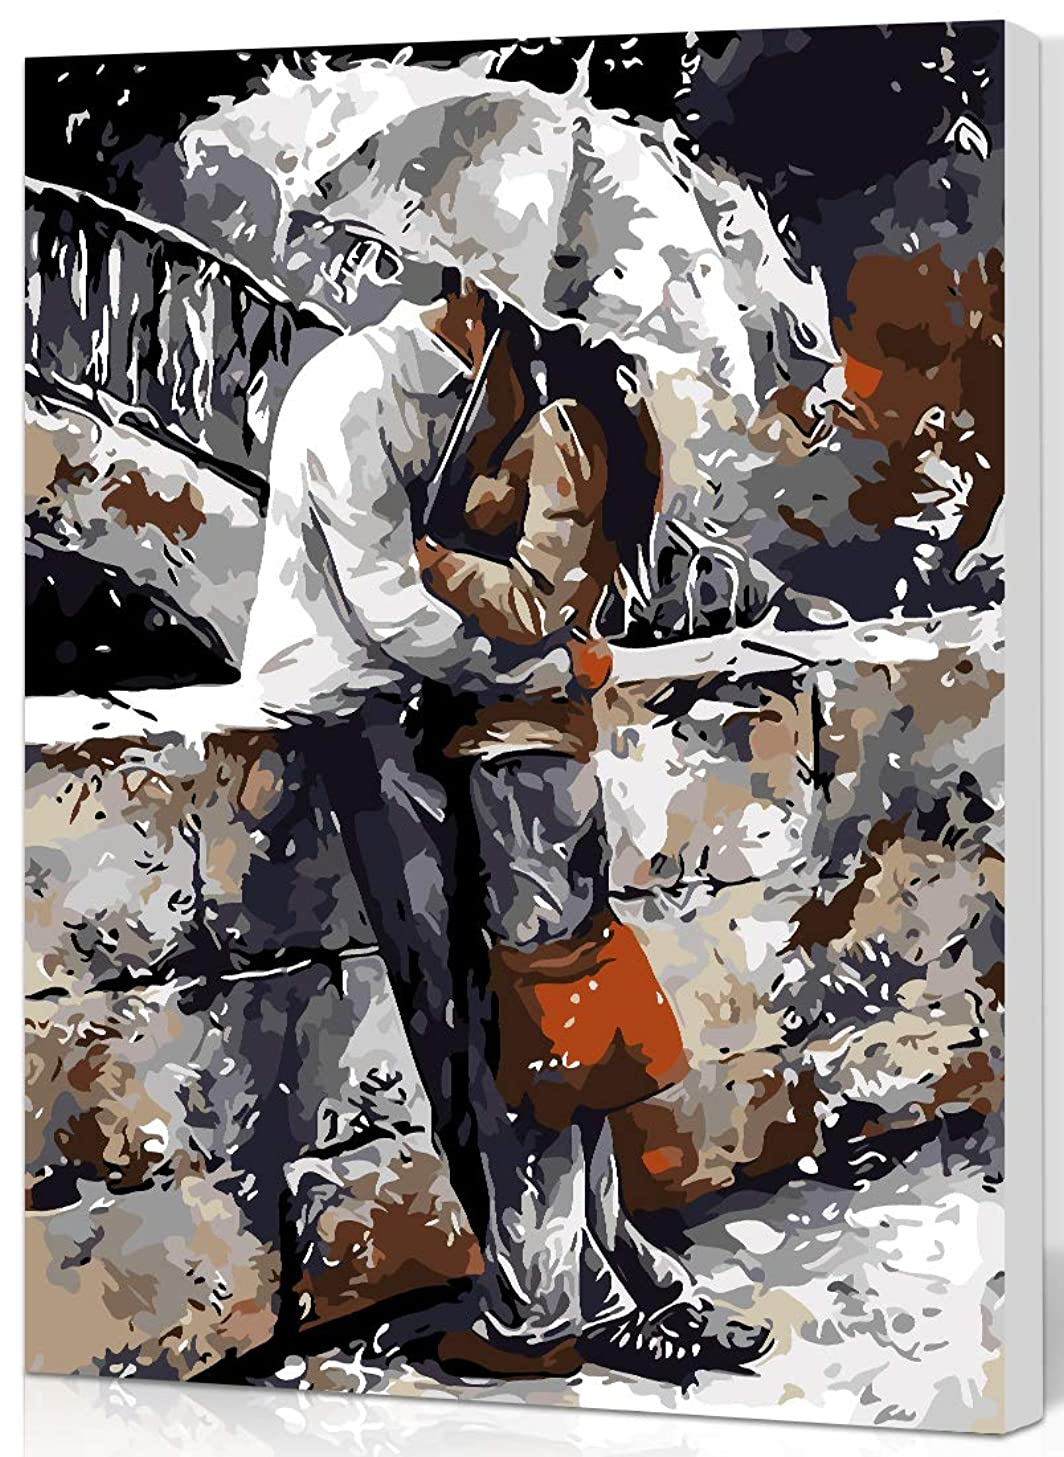 SHUAXIN DIY Oil Painting Paint by Number Kits DIY Canvas Painting by Numbers Acrylic Oil Painting for Adults Kids Rain Romantic Kiss 16x20 inch Wooden Framed